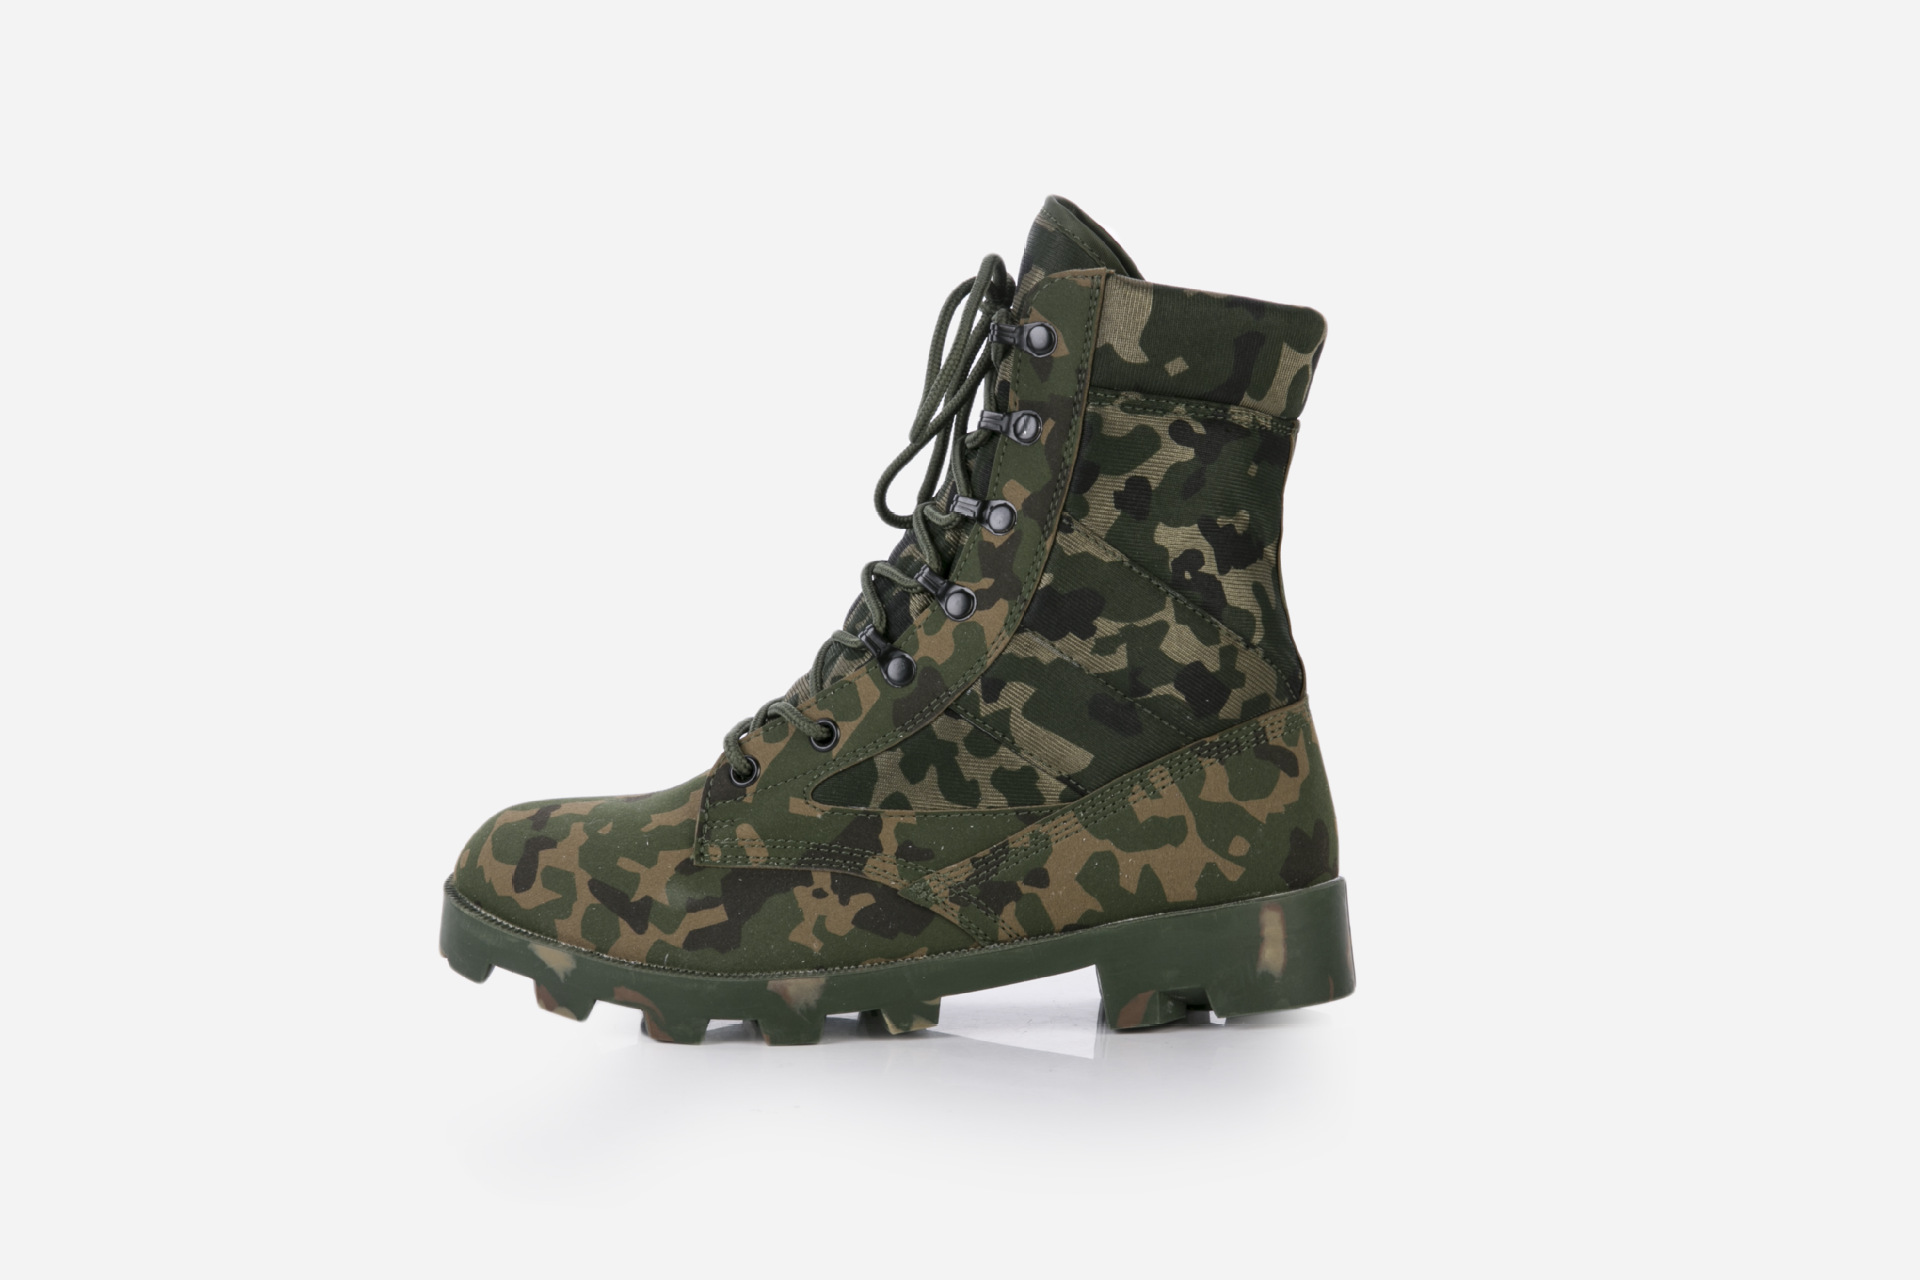 Manufacturers Promotional Camouflage Hight-top Combat Boots Ultra-Light Boots Camouflage Outdoor Training Boots Delta Hight-top